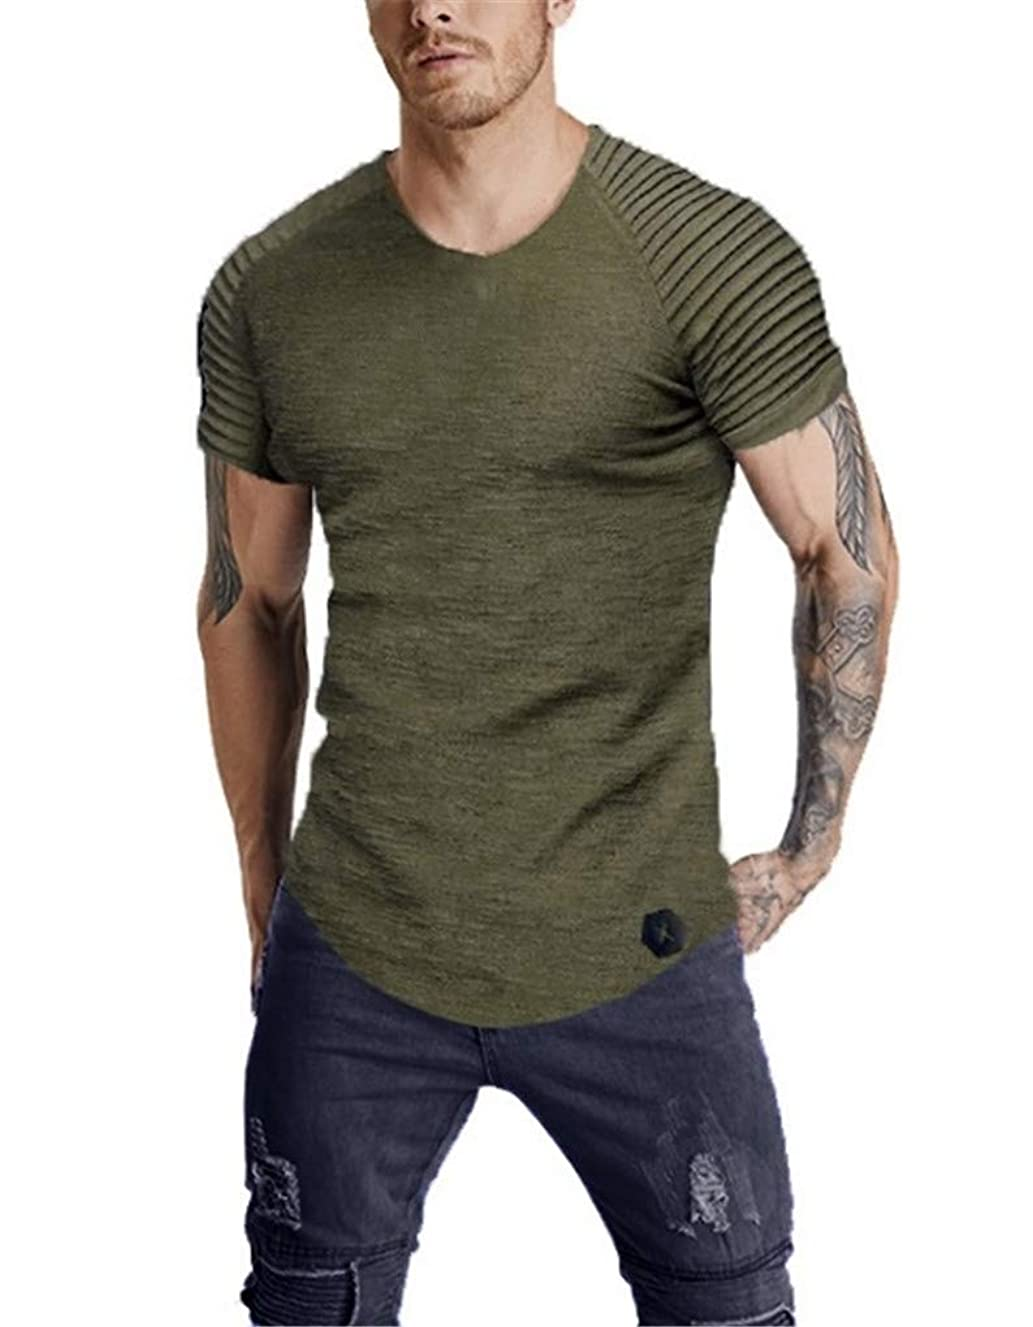 Fenxxxl Mens Casual Slim Fit Short Sleeve Solid Color Classic T-Shirts Basic Tee Running Tops